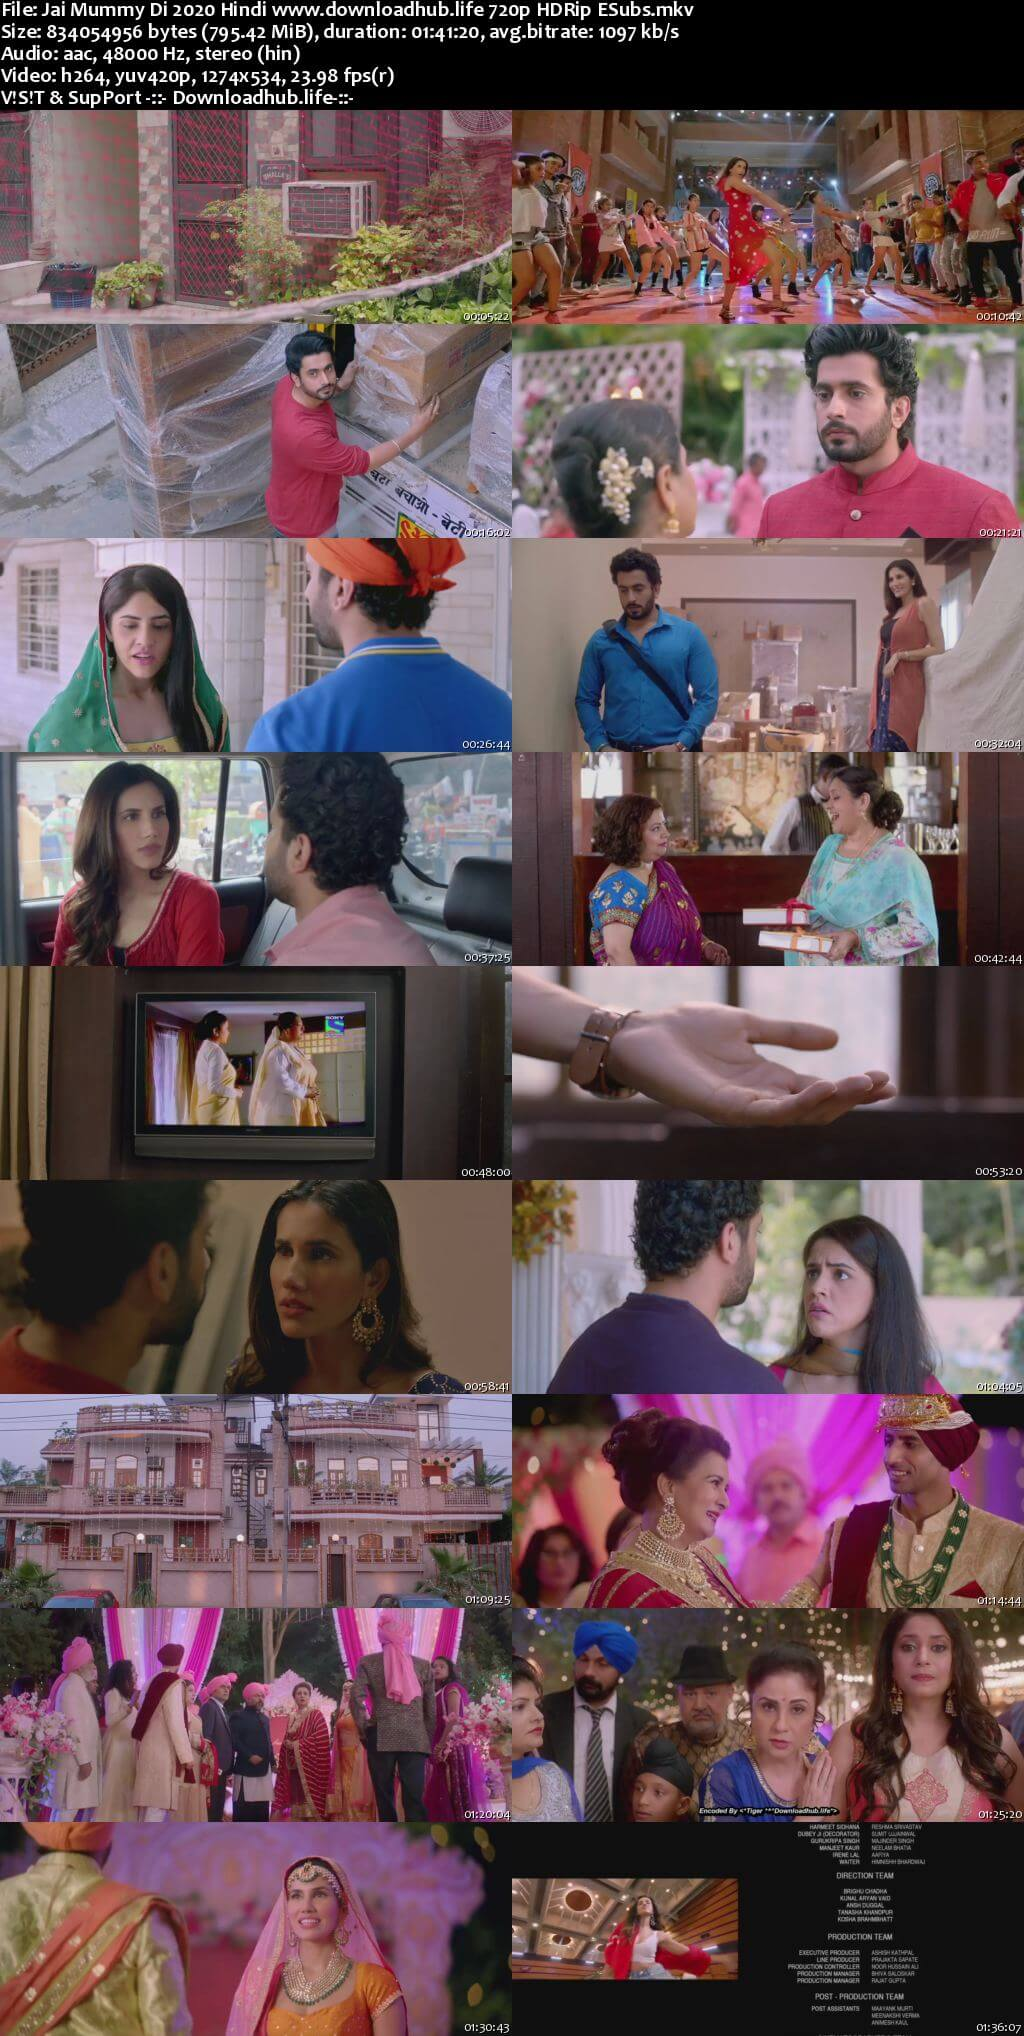 Jai Mummy Di 2020 Hindi 720p HDRip ESubs